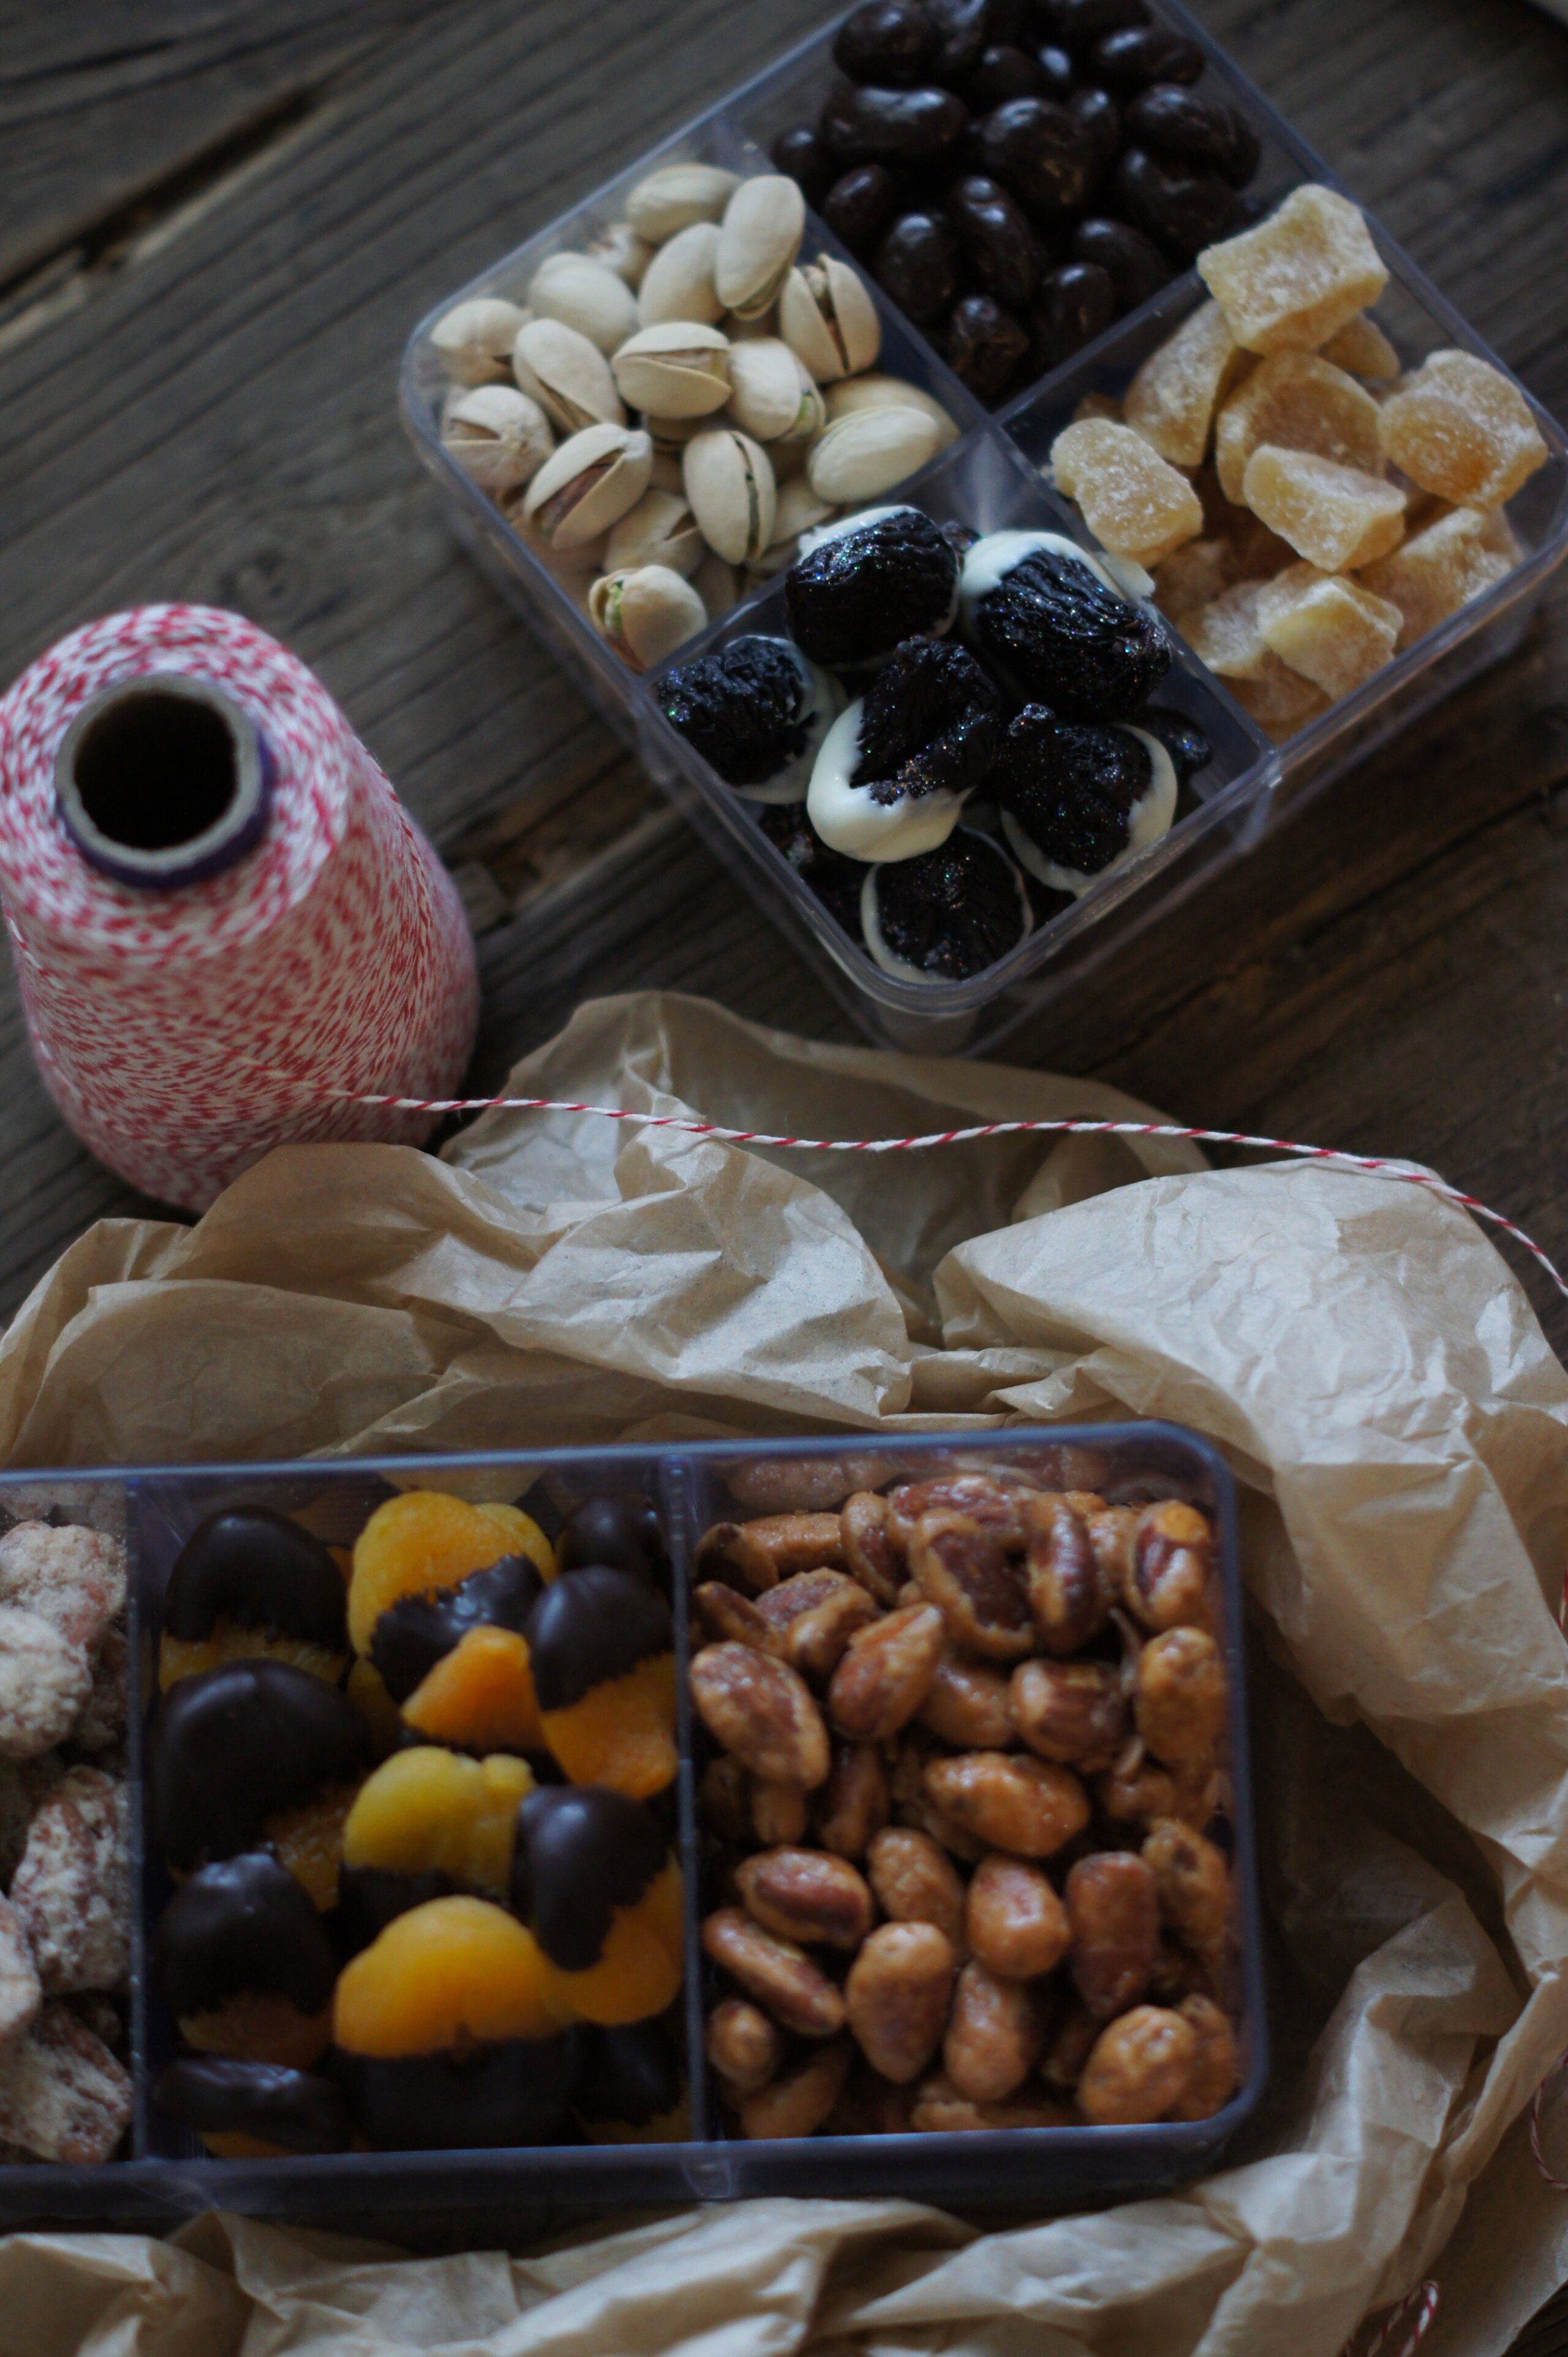 Edible Gifting: Dried Fruit & Nuts Boxes